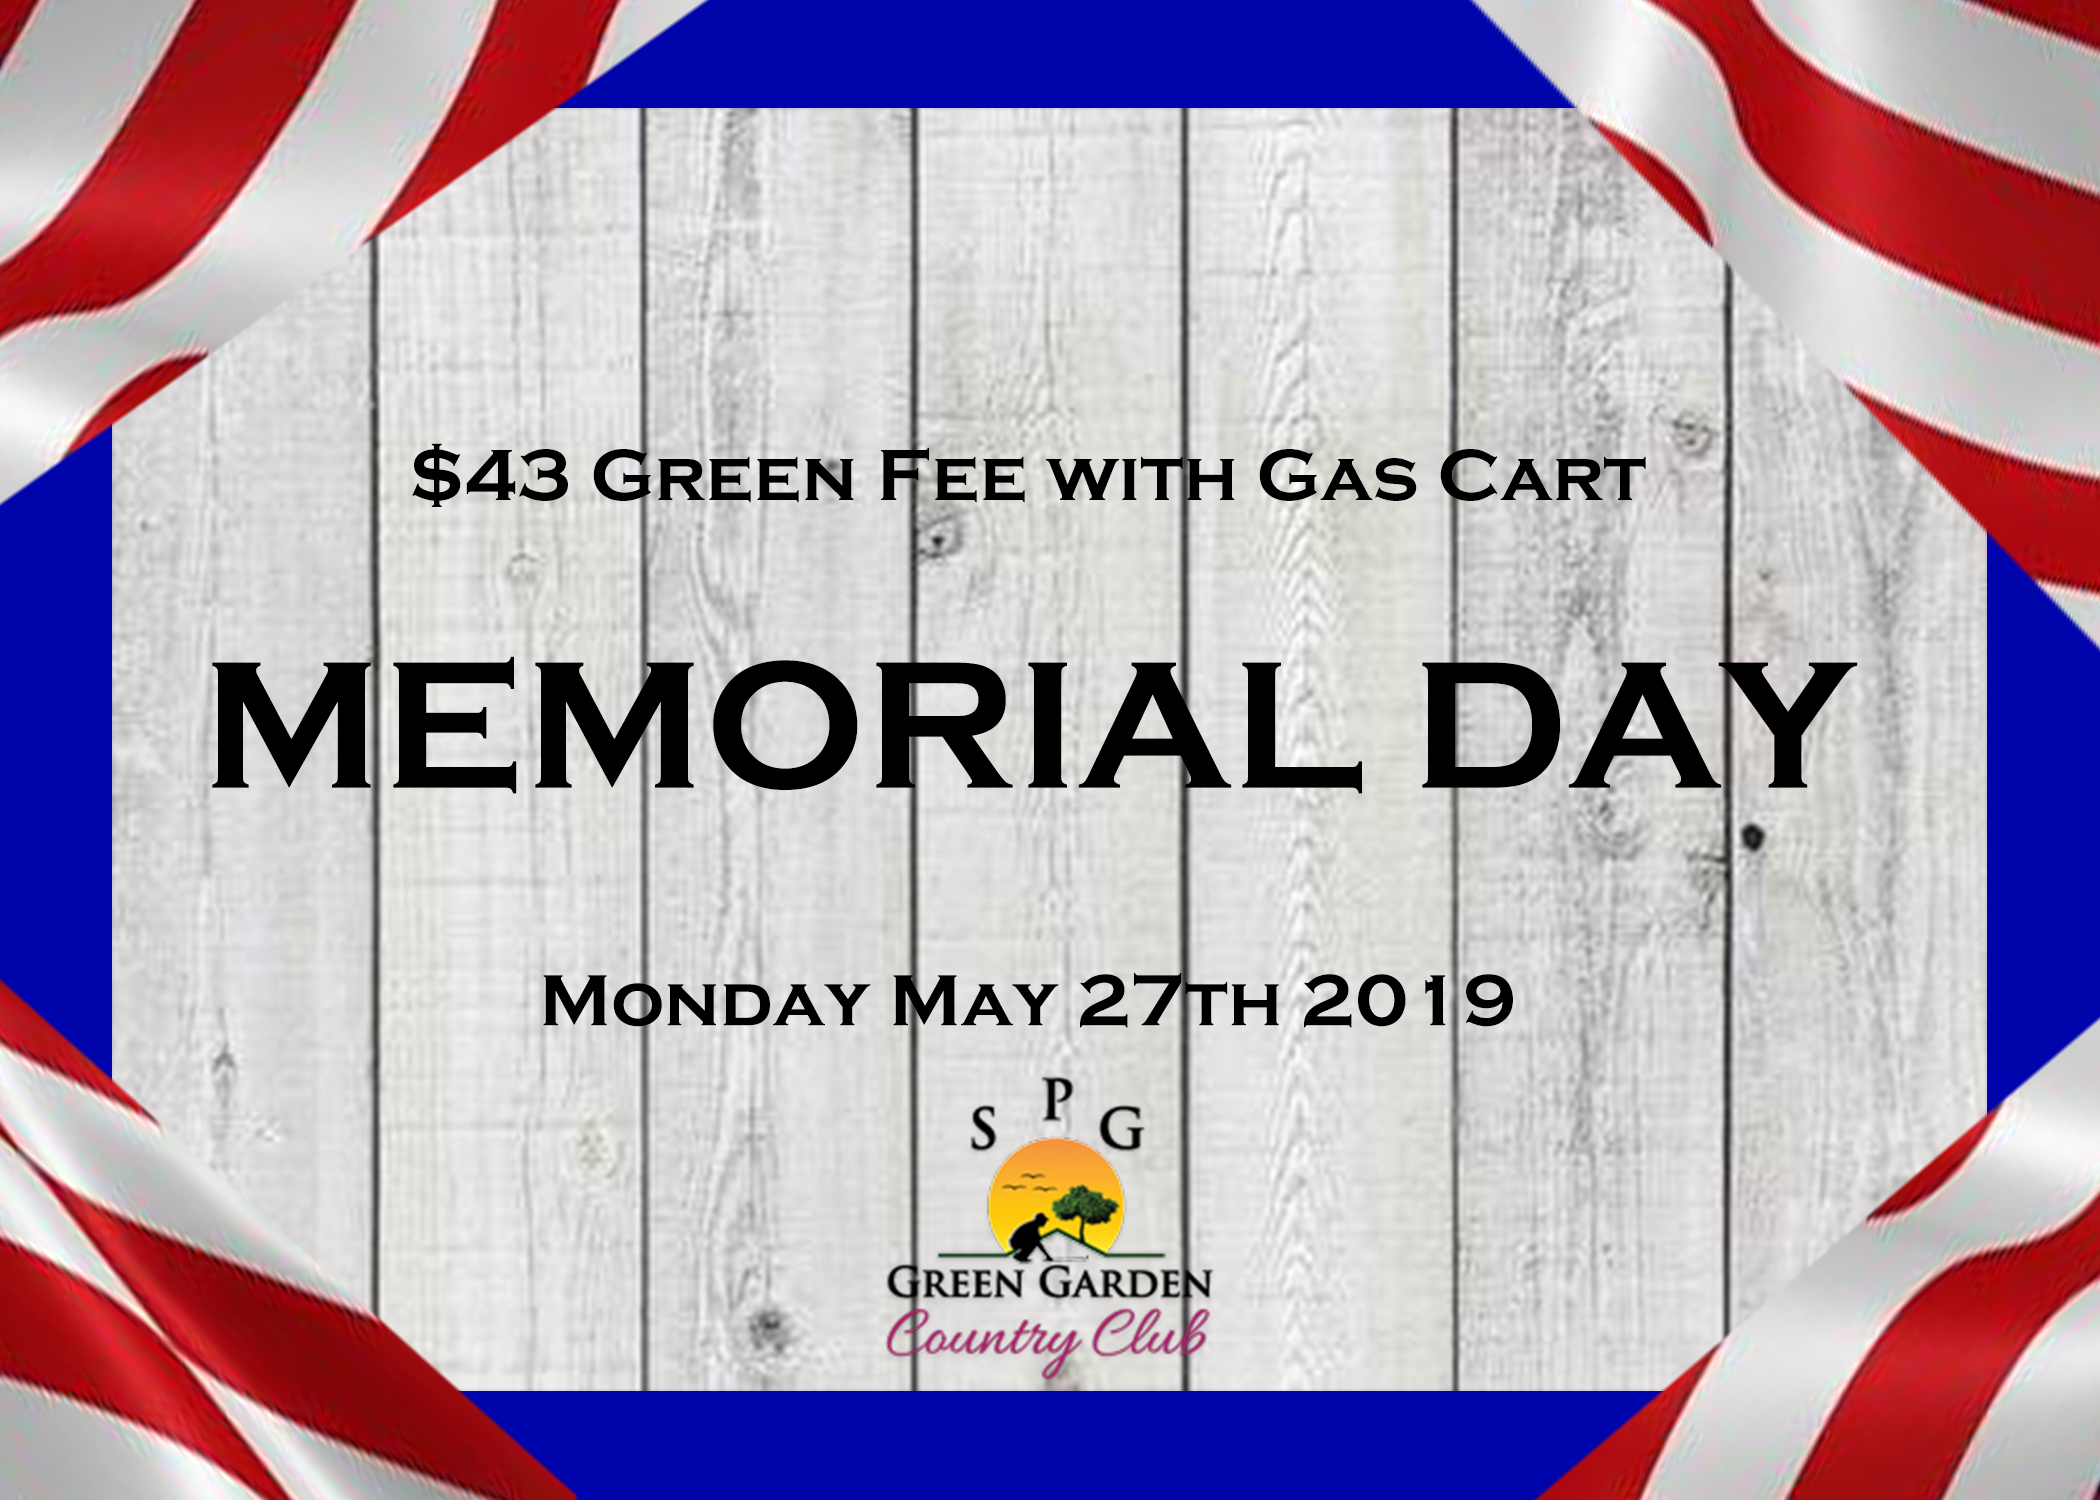 Memorial Day Golf Special Spg Green Garden Country Club